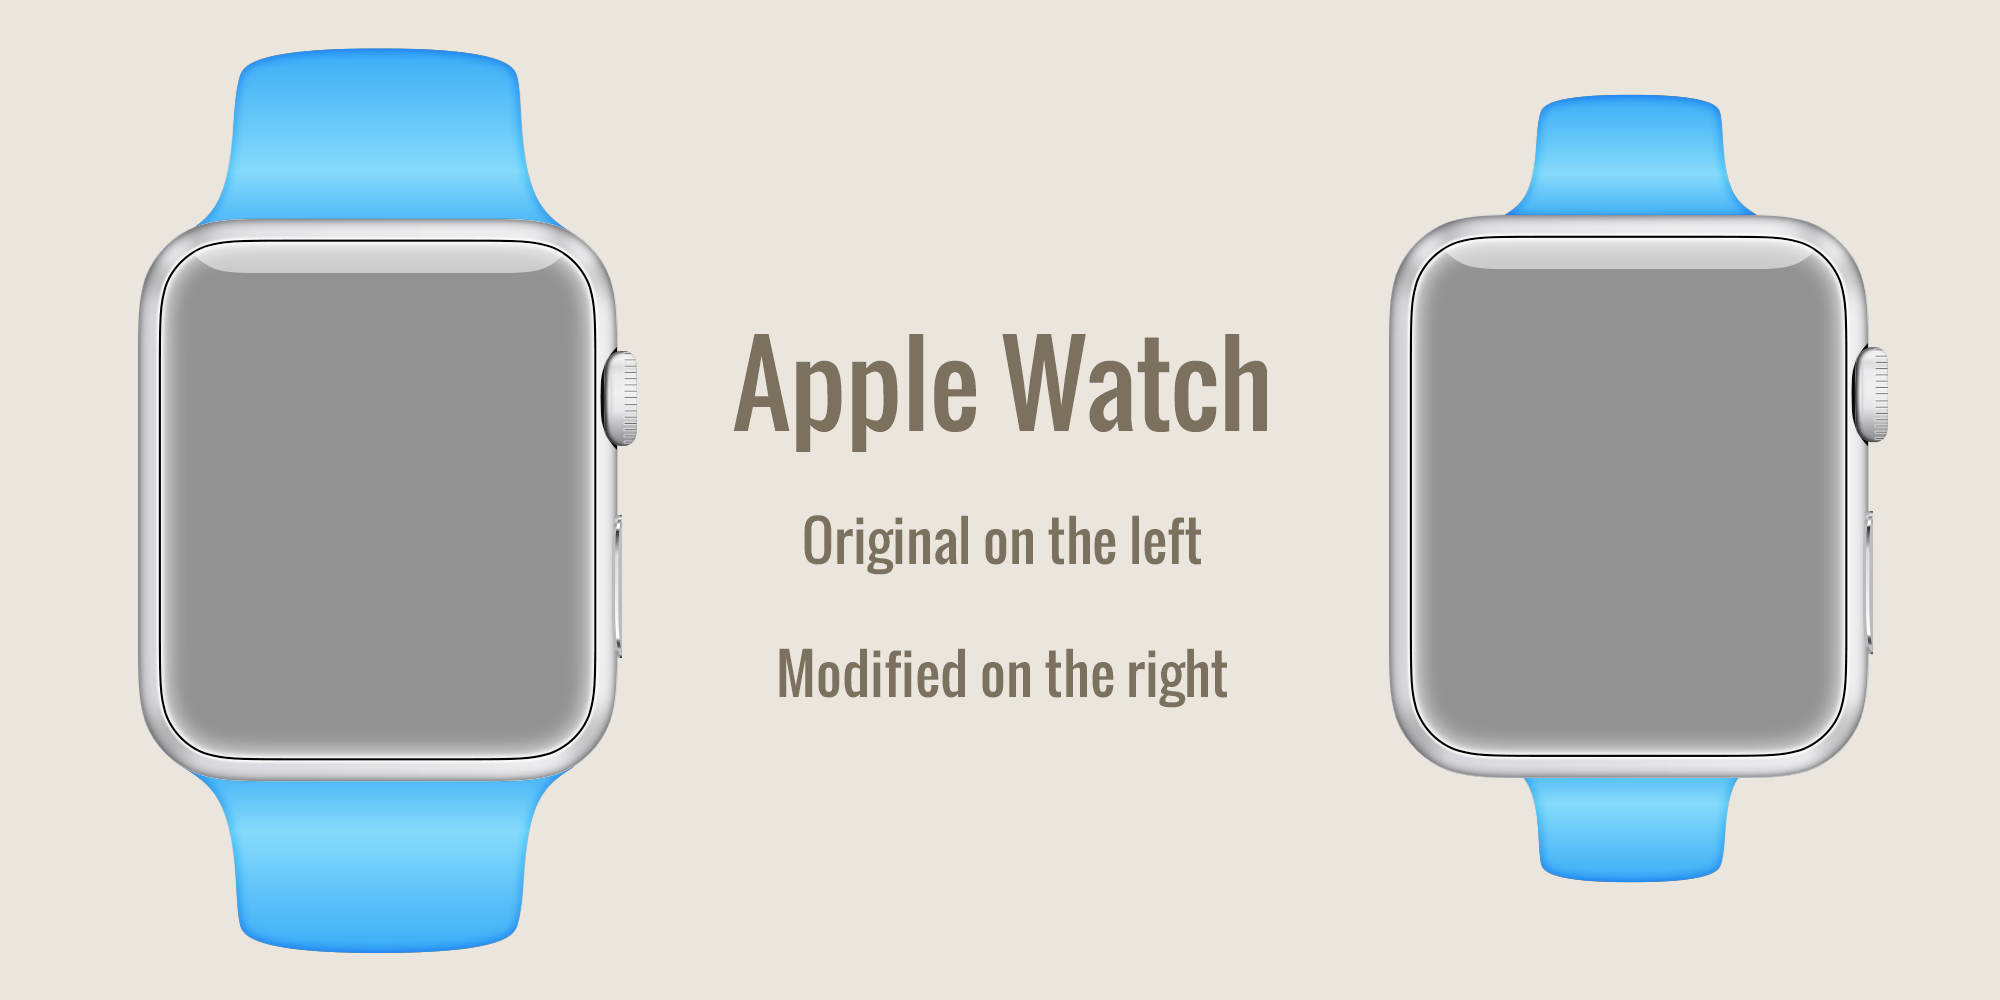 Apple Watch examples of Balanced and Unbalanced design